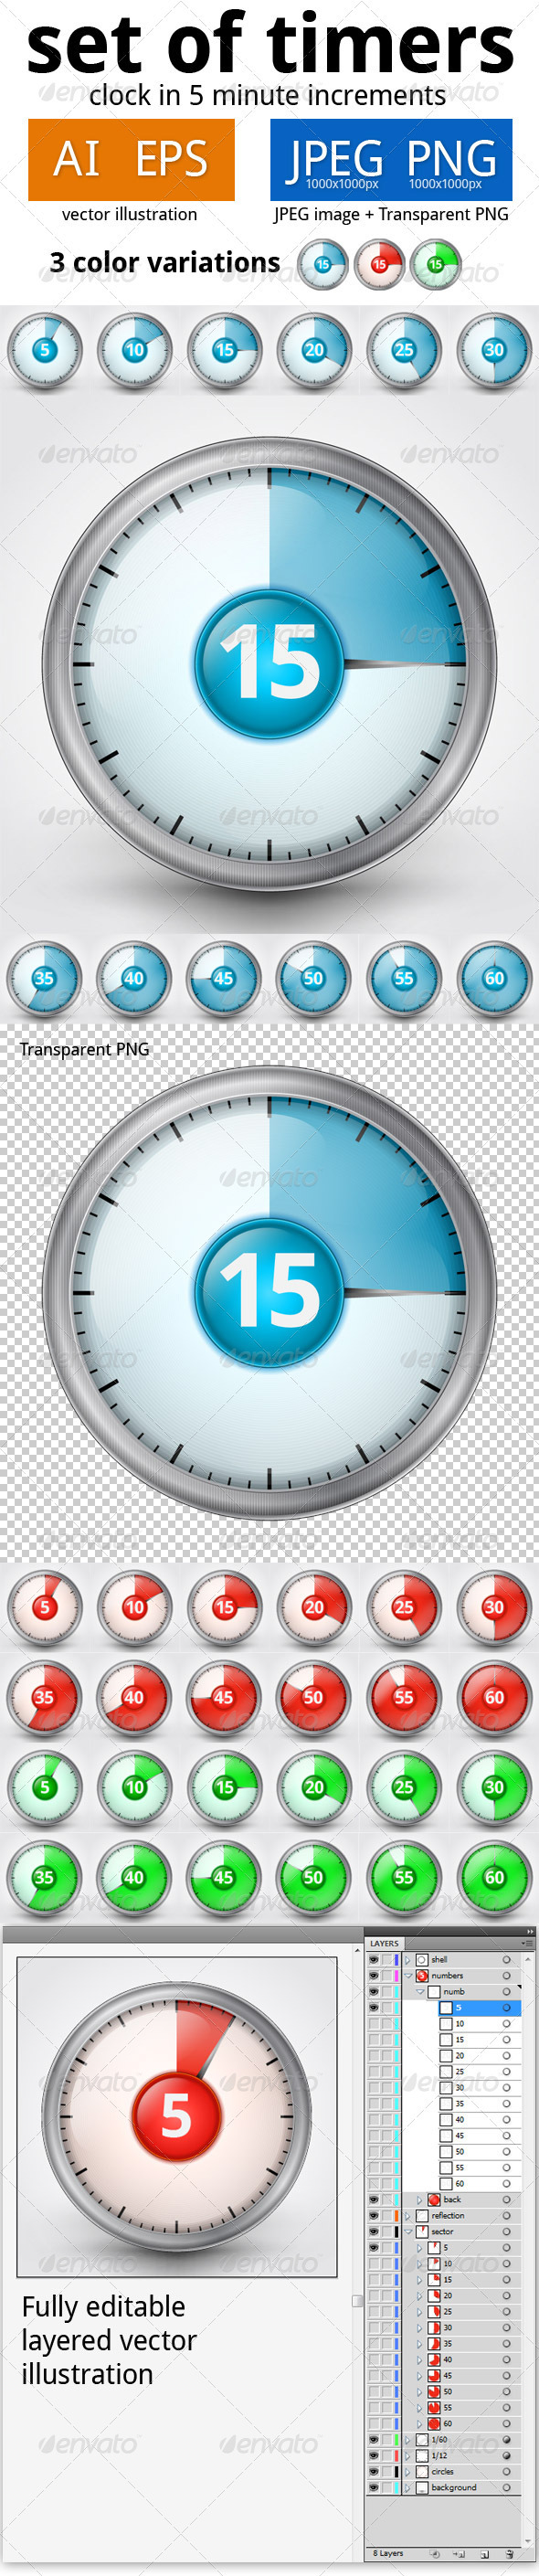 GraphicRiver Set of Timers 2 3749976